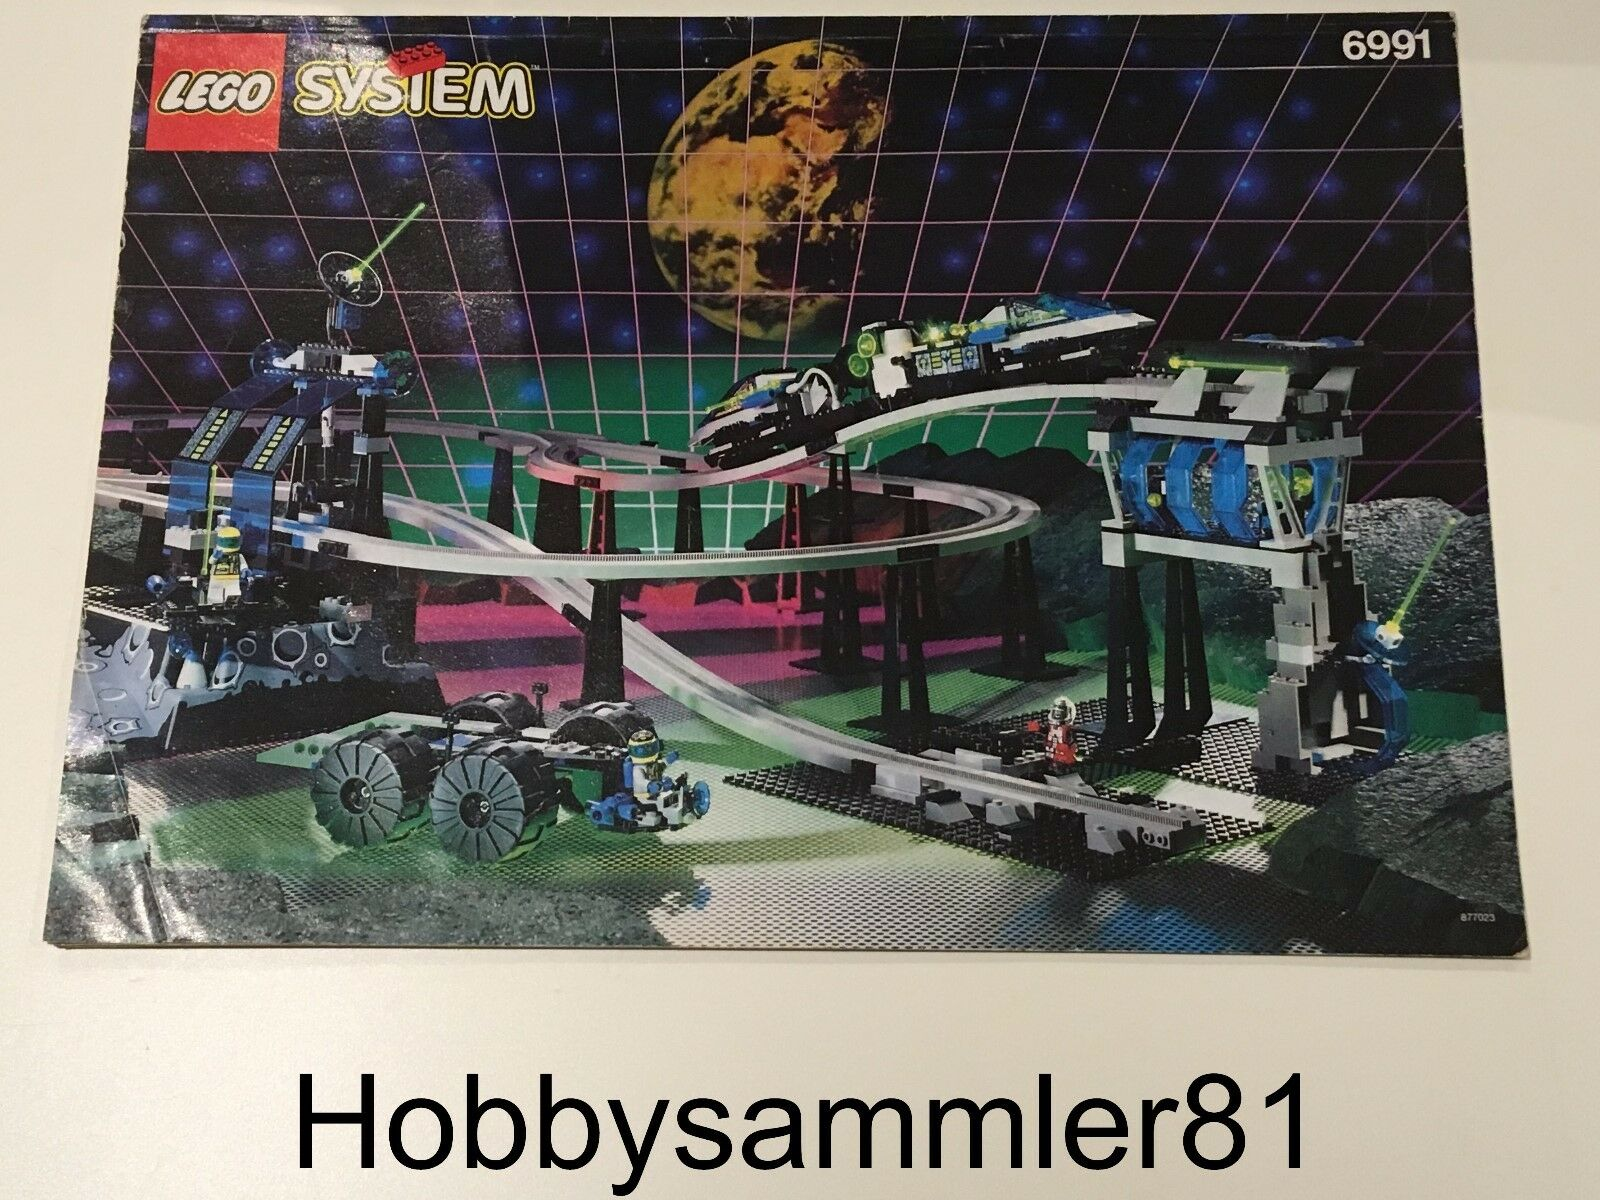 Lego® 6991 System Space Bauanleitung Monorail Transport Base